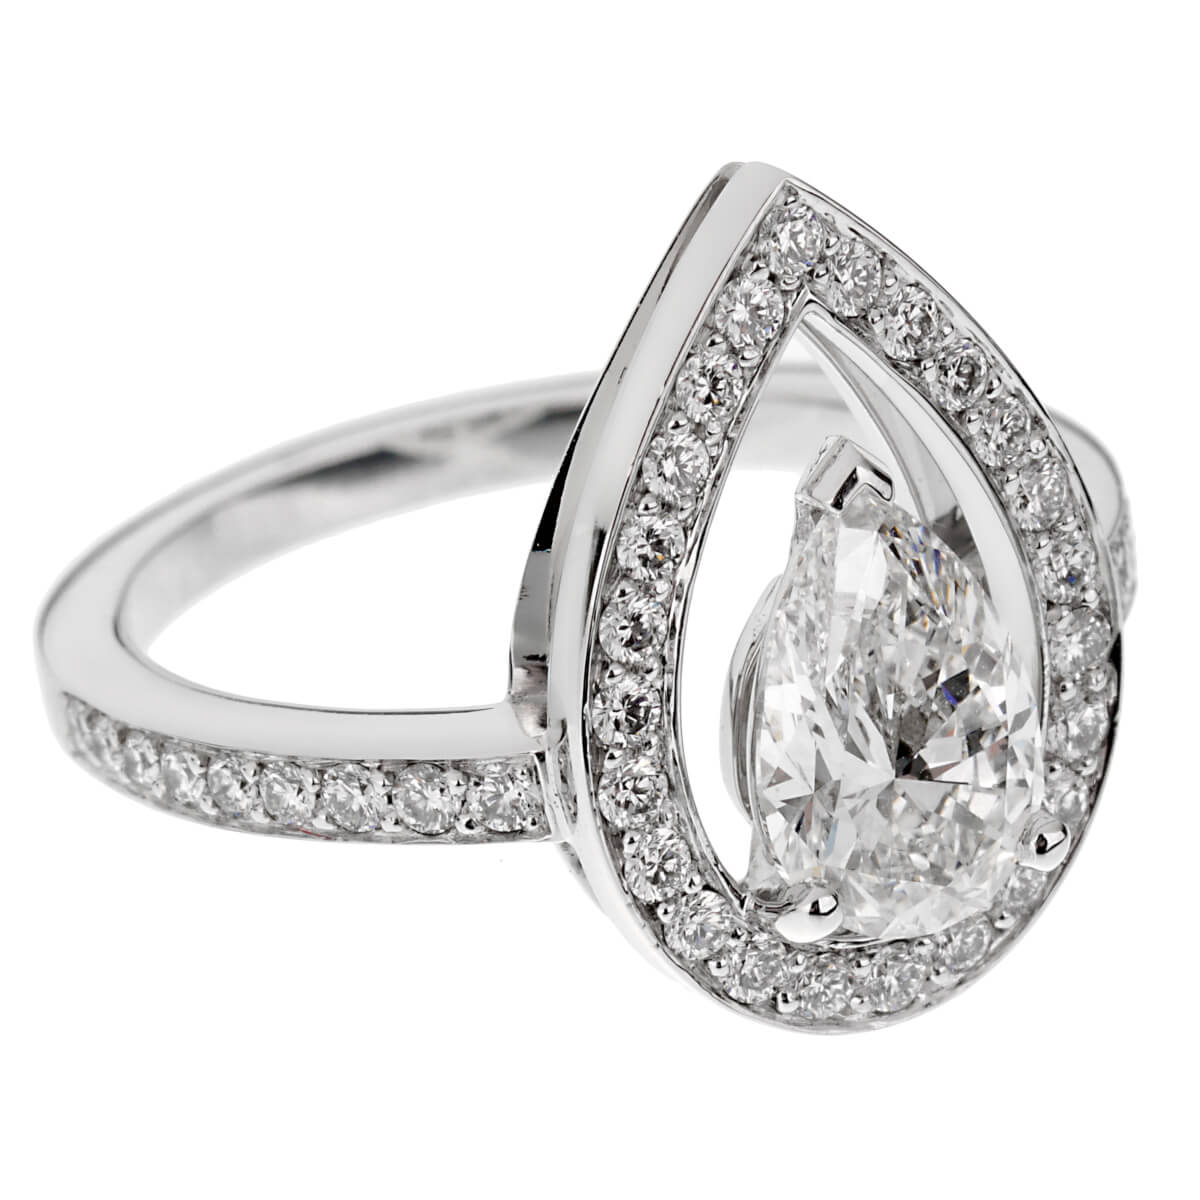 Fred of Paris Lovelight Pear Shaped .66ct Diamond Engagement Ring